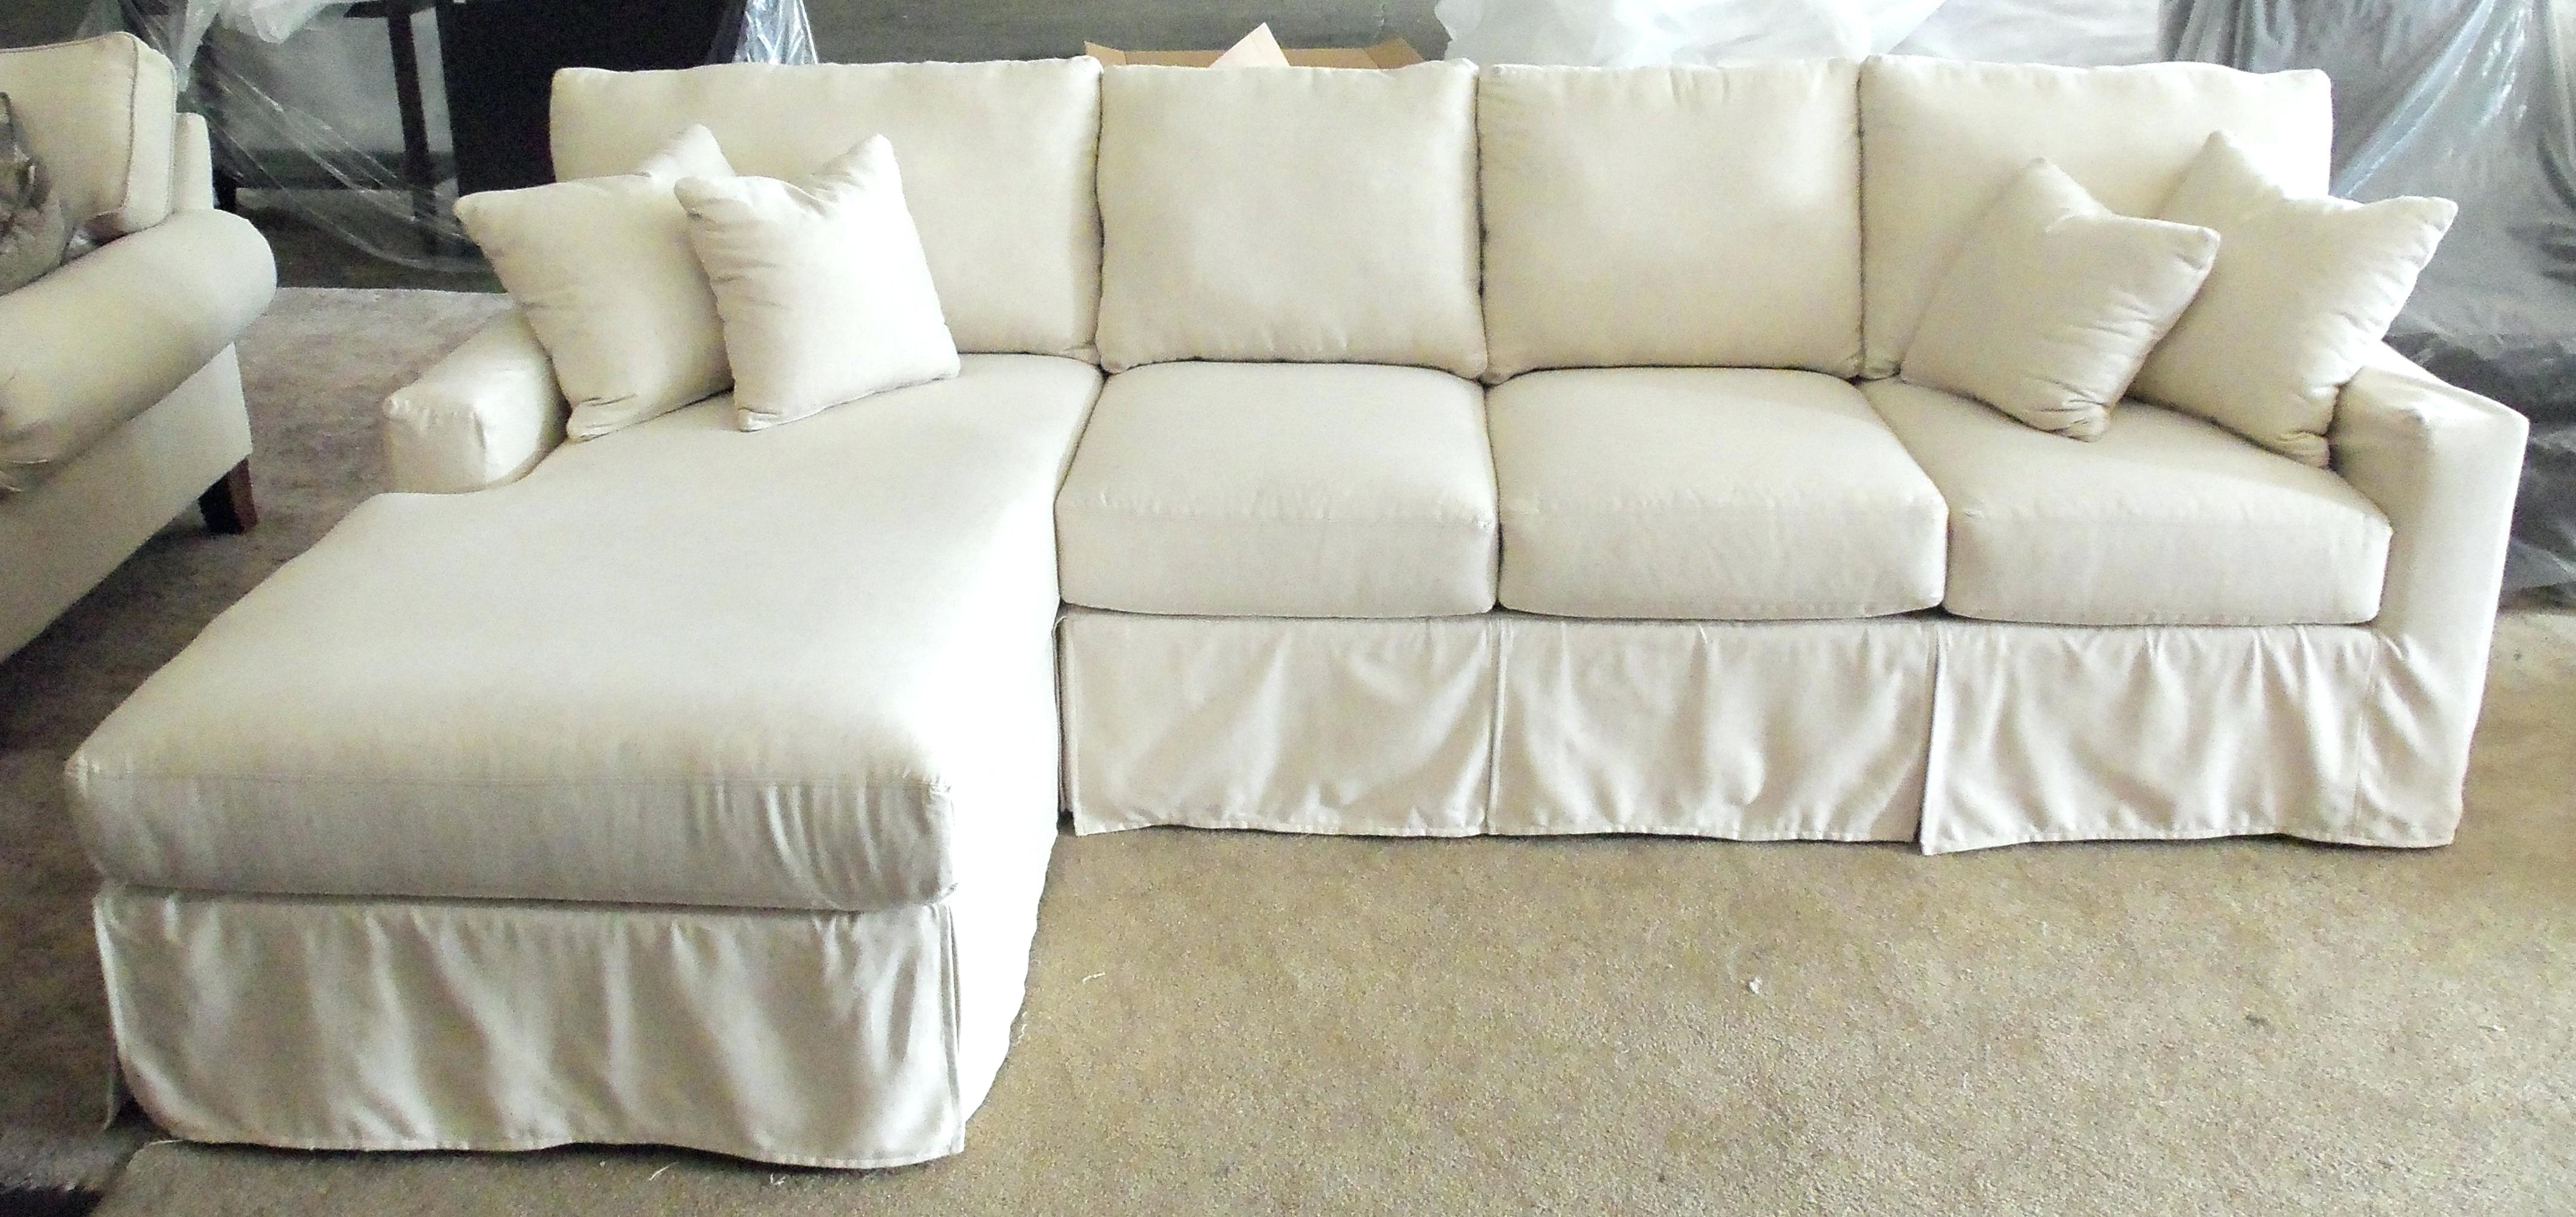 Well Known Slipcover For Sectional F Slipcovers Sofas Walmart Sleeper Sofa In Slipcovers Sofas (View 20 of 20)